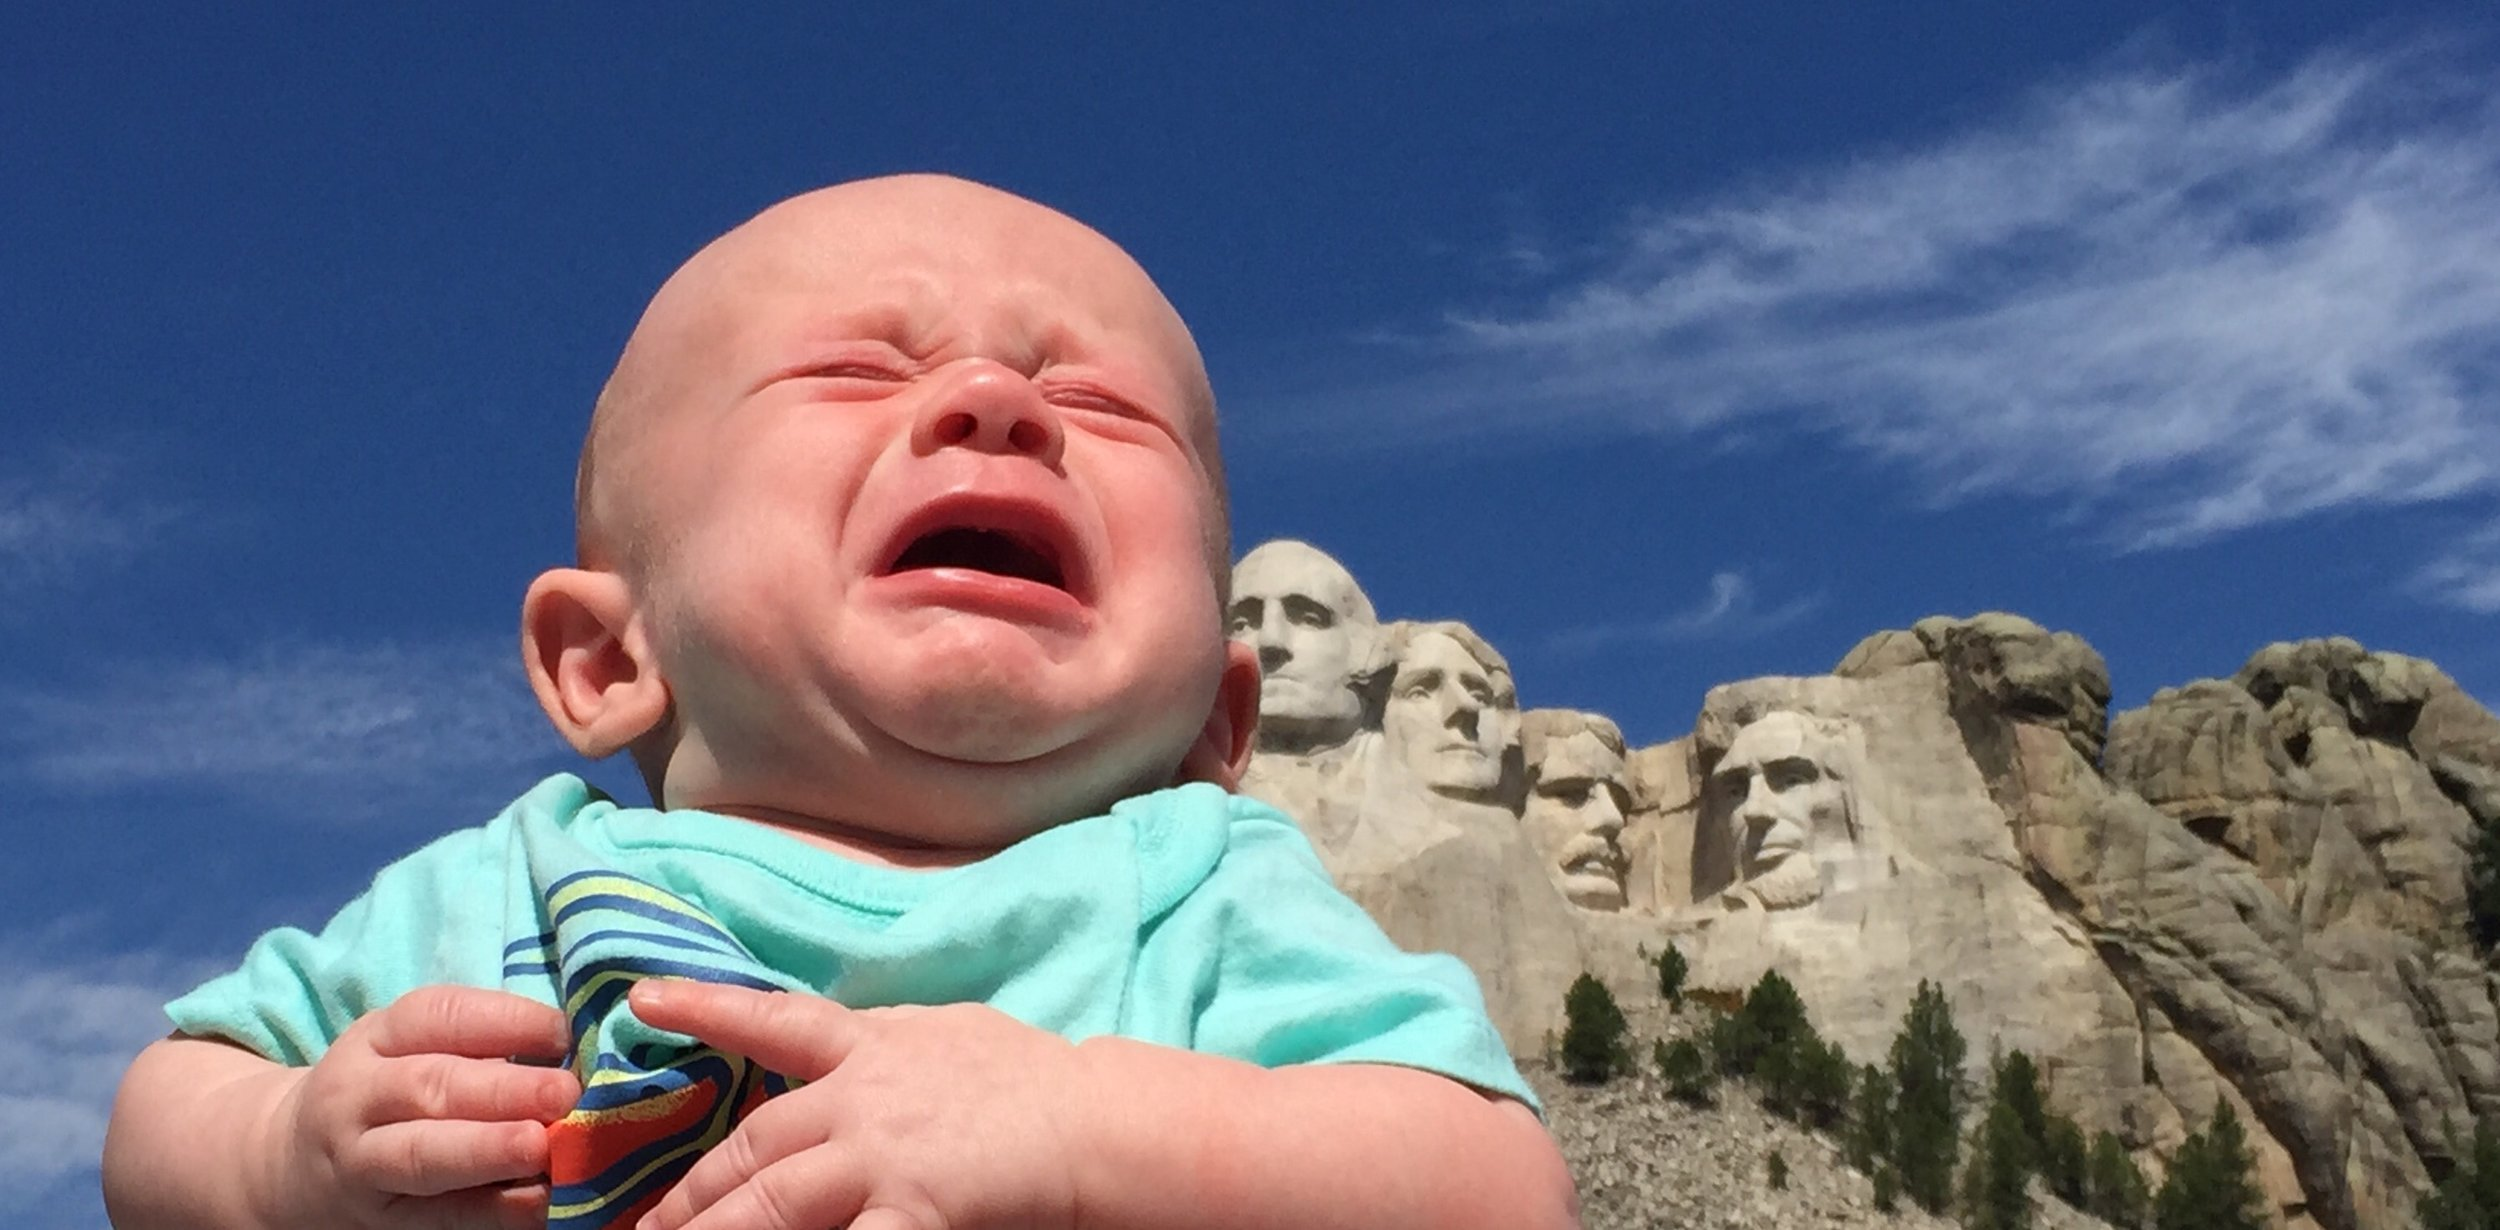 My son Tucker at his first trip to Mount Rushmore, 2015